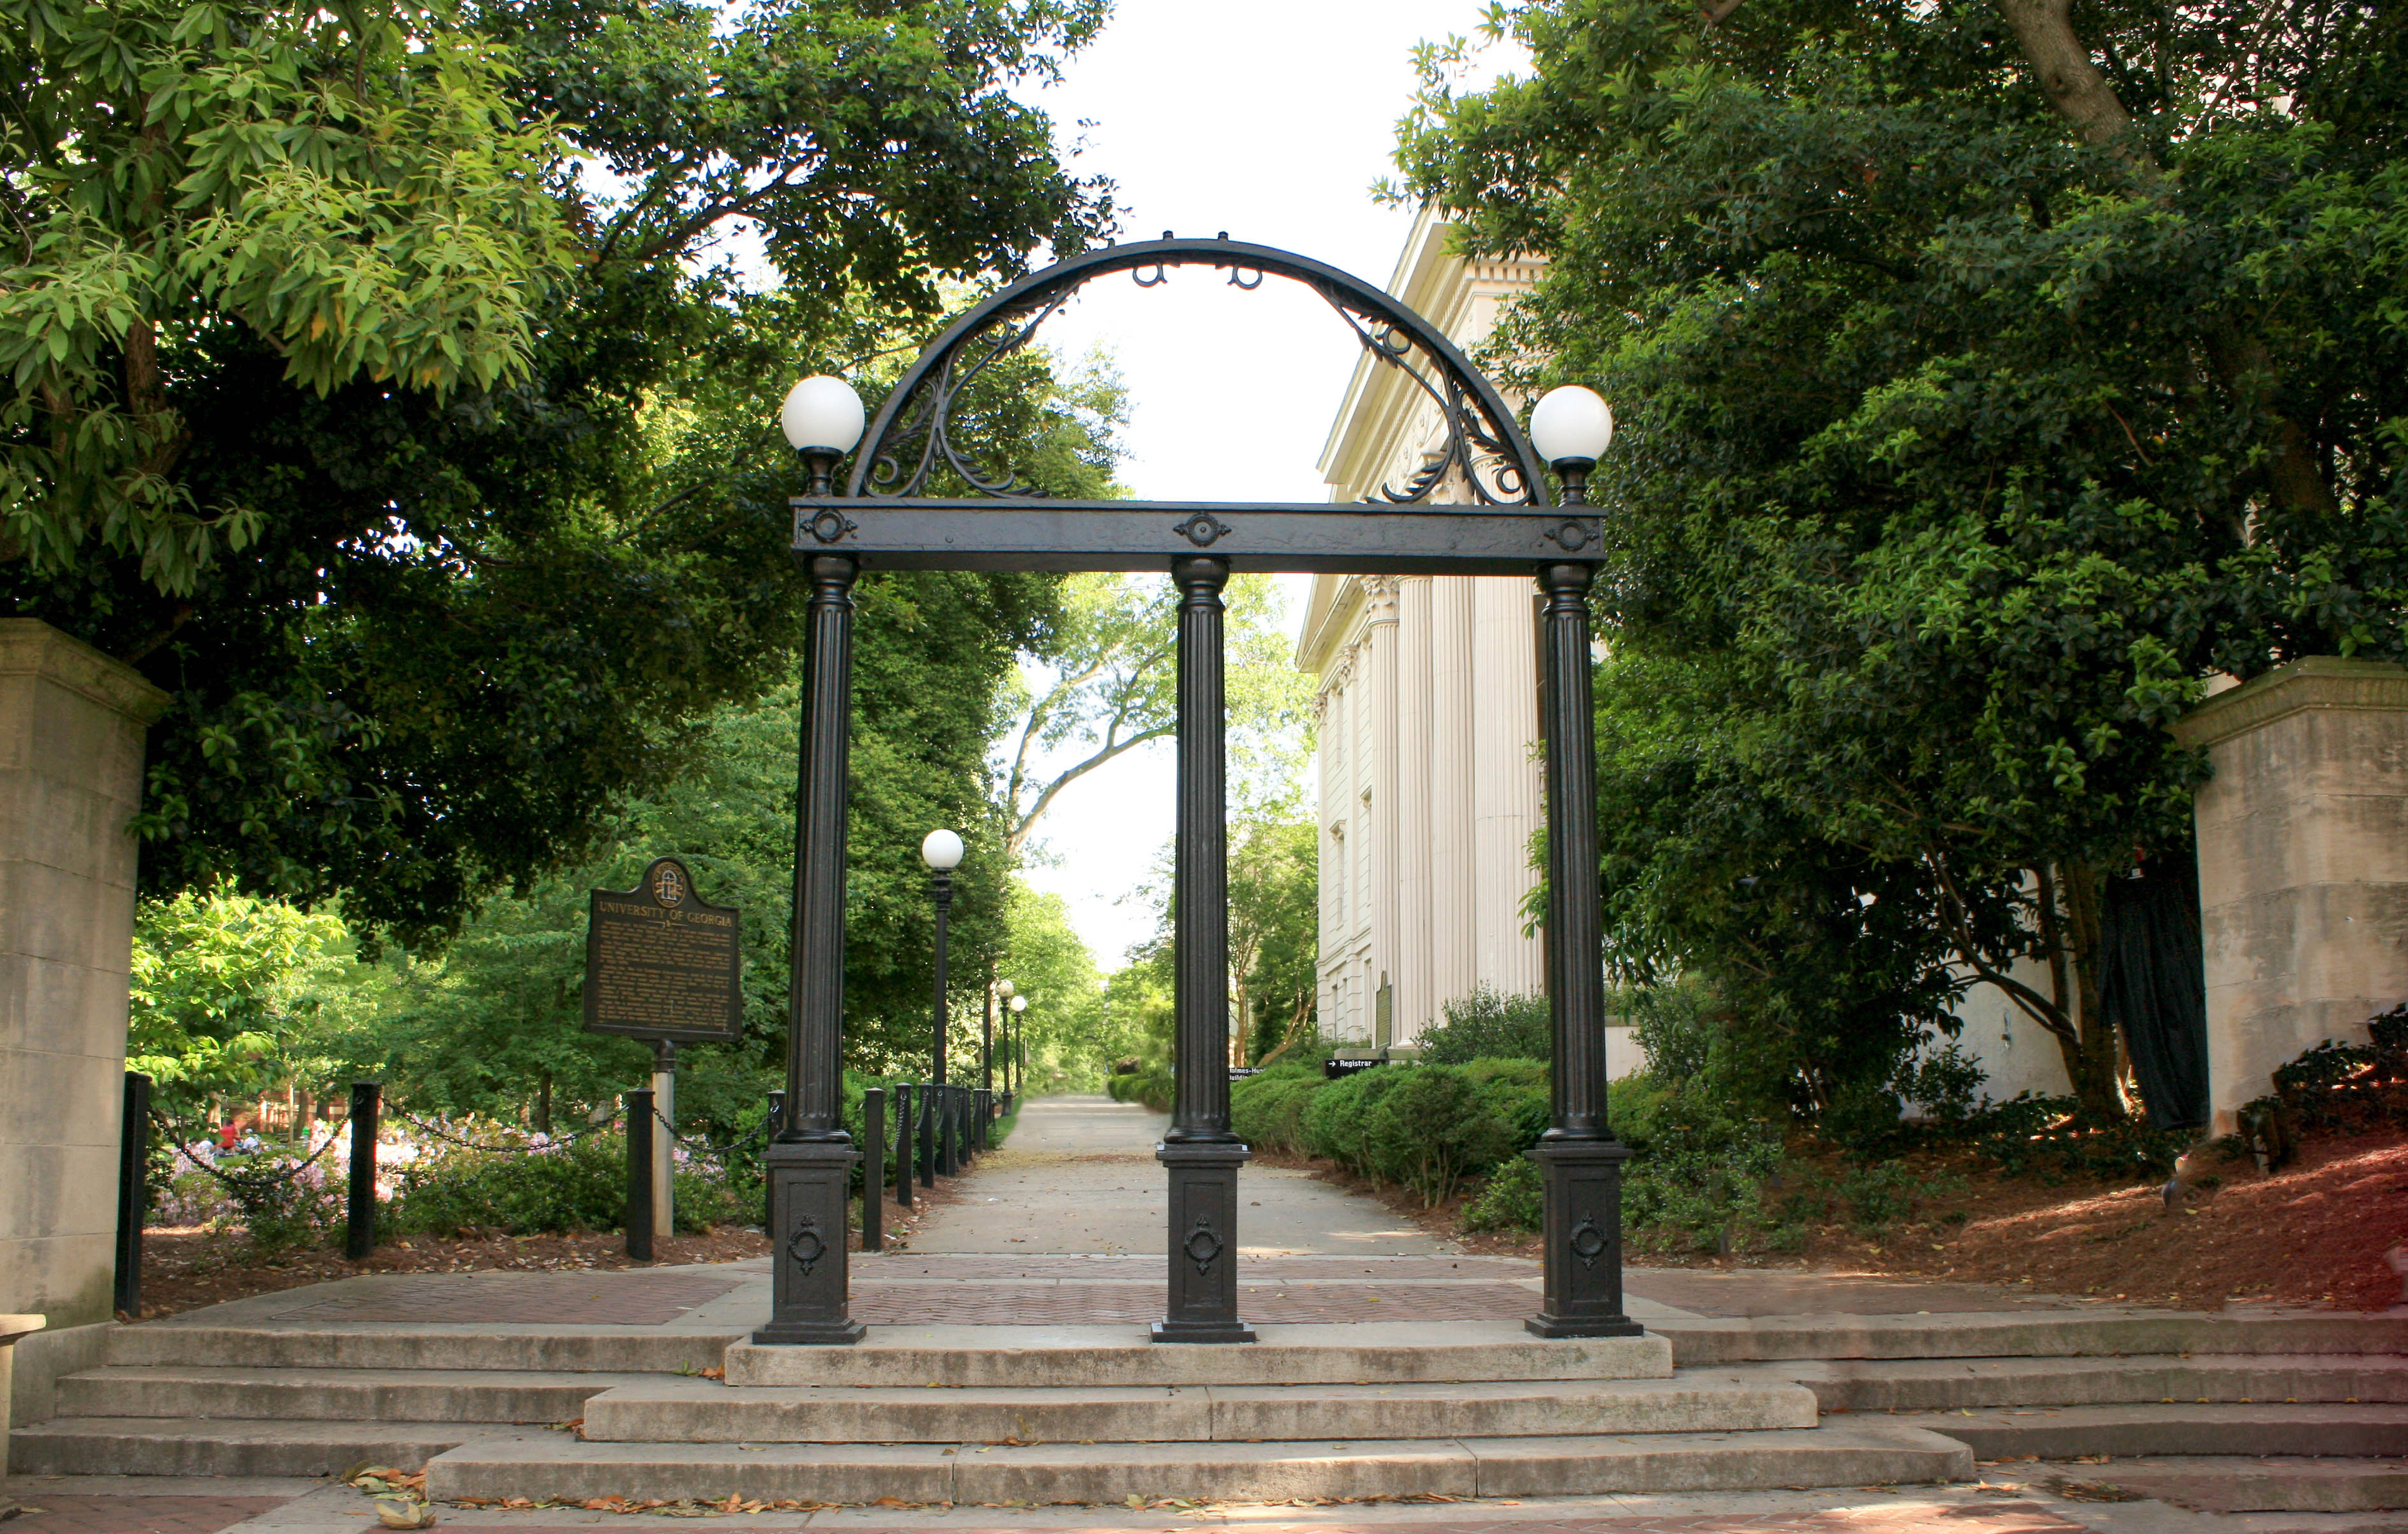 The Arch is seen at the entrance of the University of Georgia campus in Athens, Georgia, on April 27, 2017.